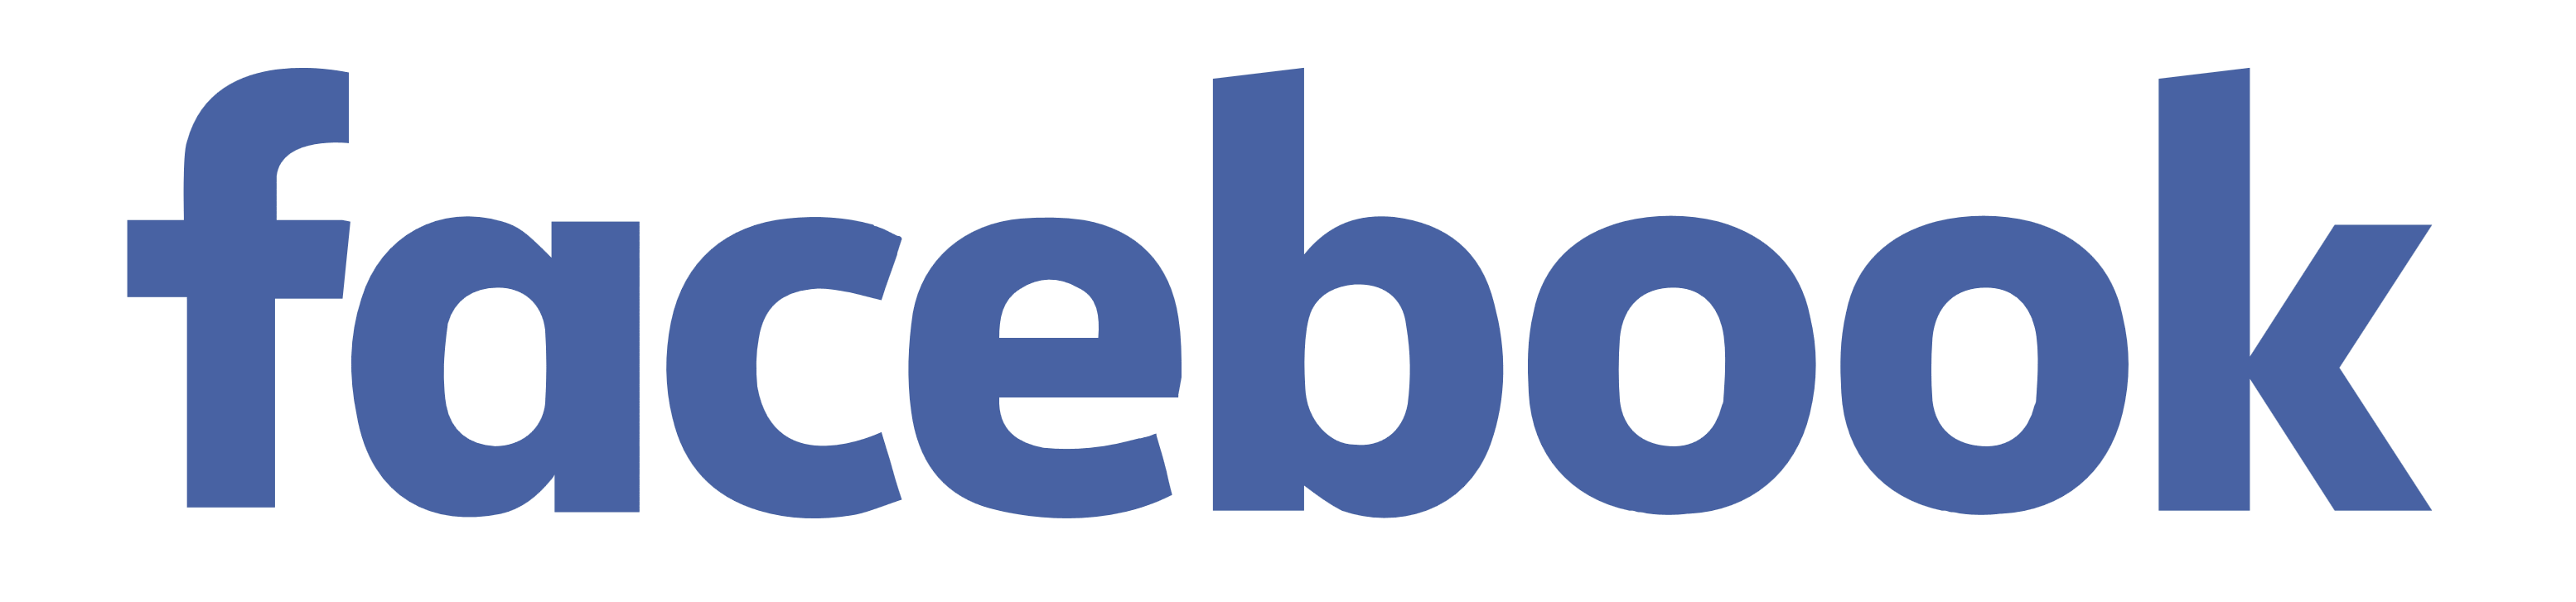 Logo Facebook Picture PNG image #46273